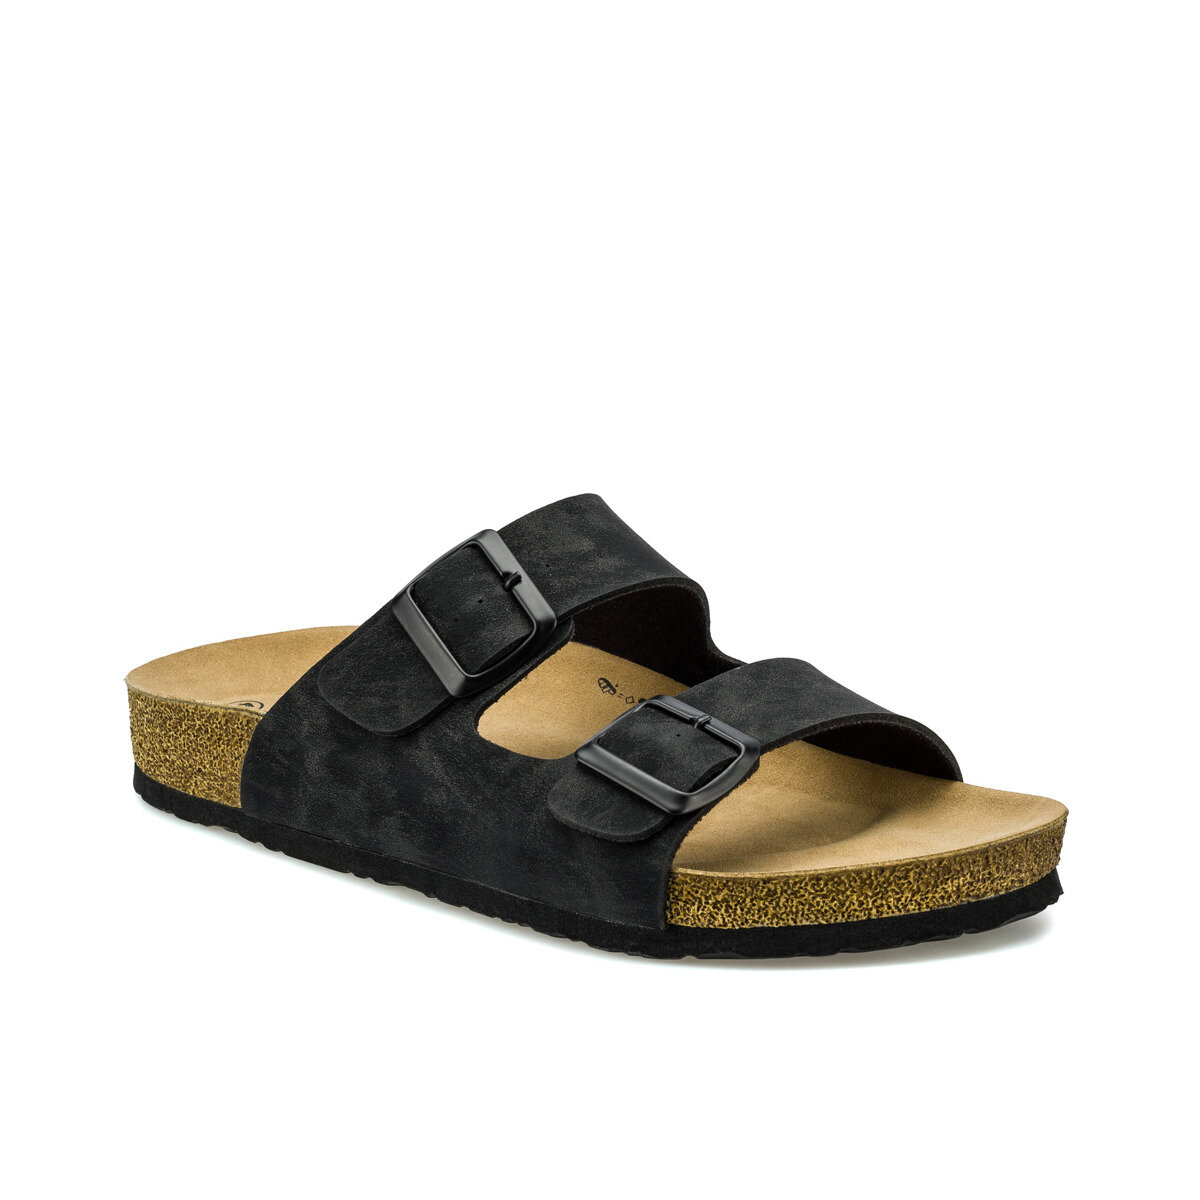 FLO ATEN Black Male Slippers KINETIX